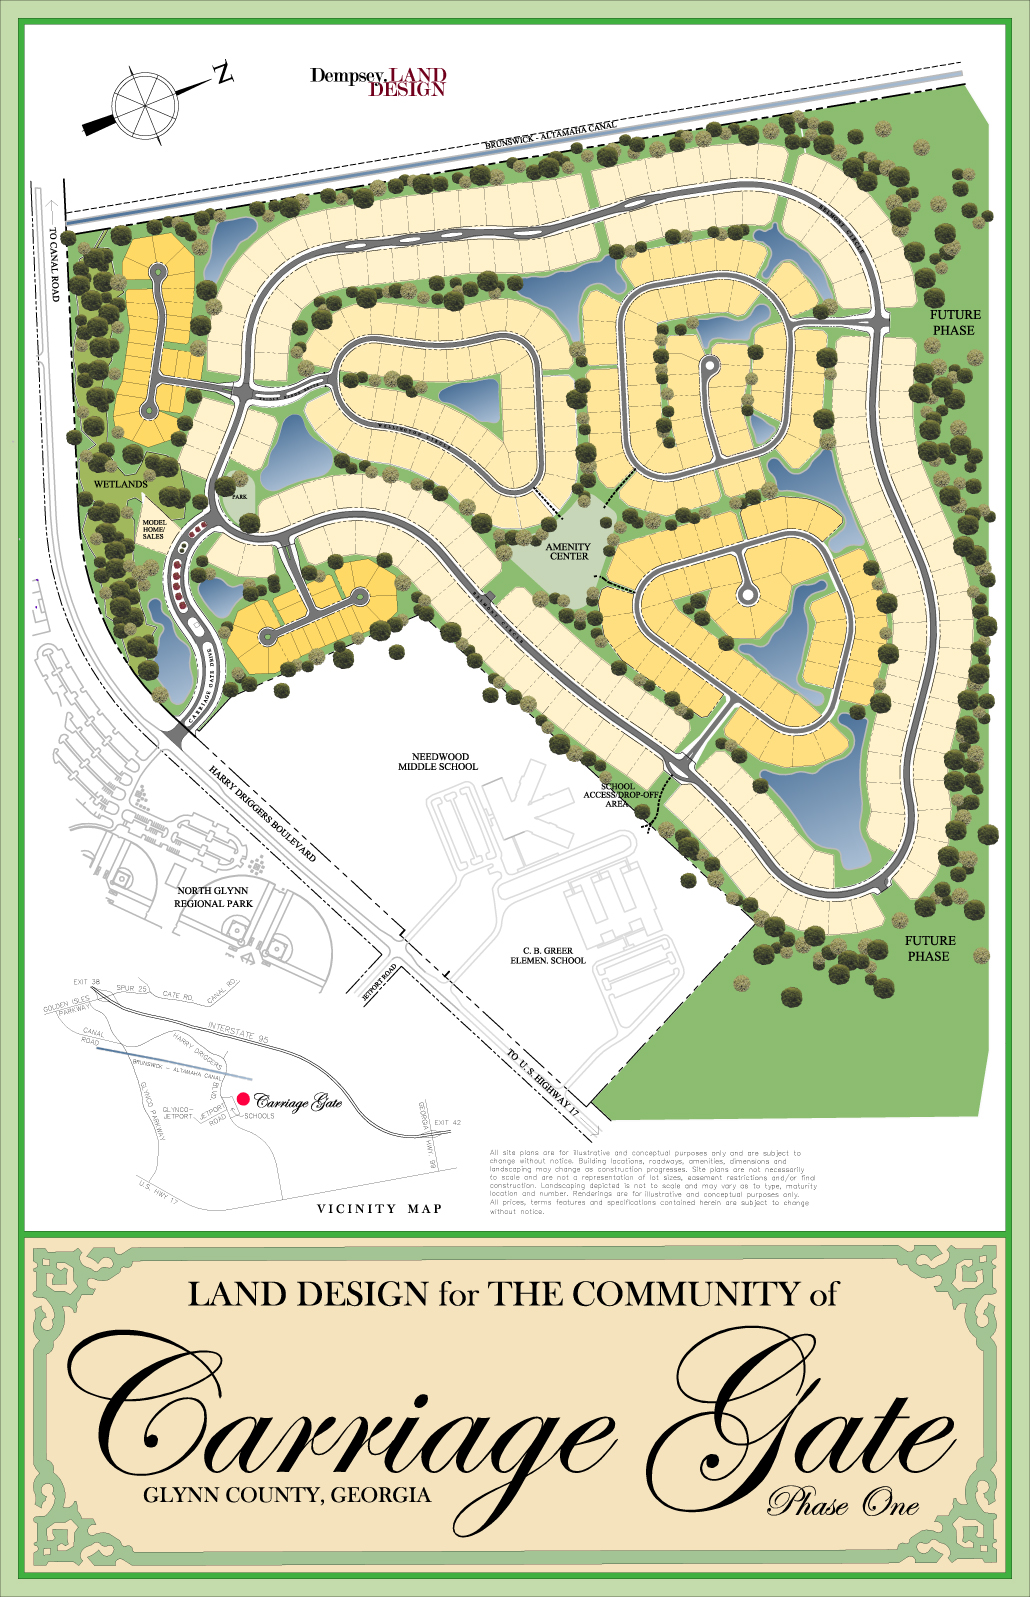 Mixed Residential Land Design for The Community of Carriage Gate, Glynn County, Georgia